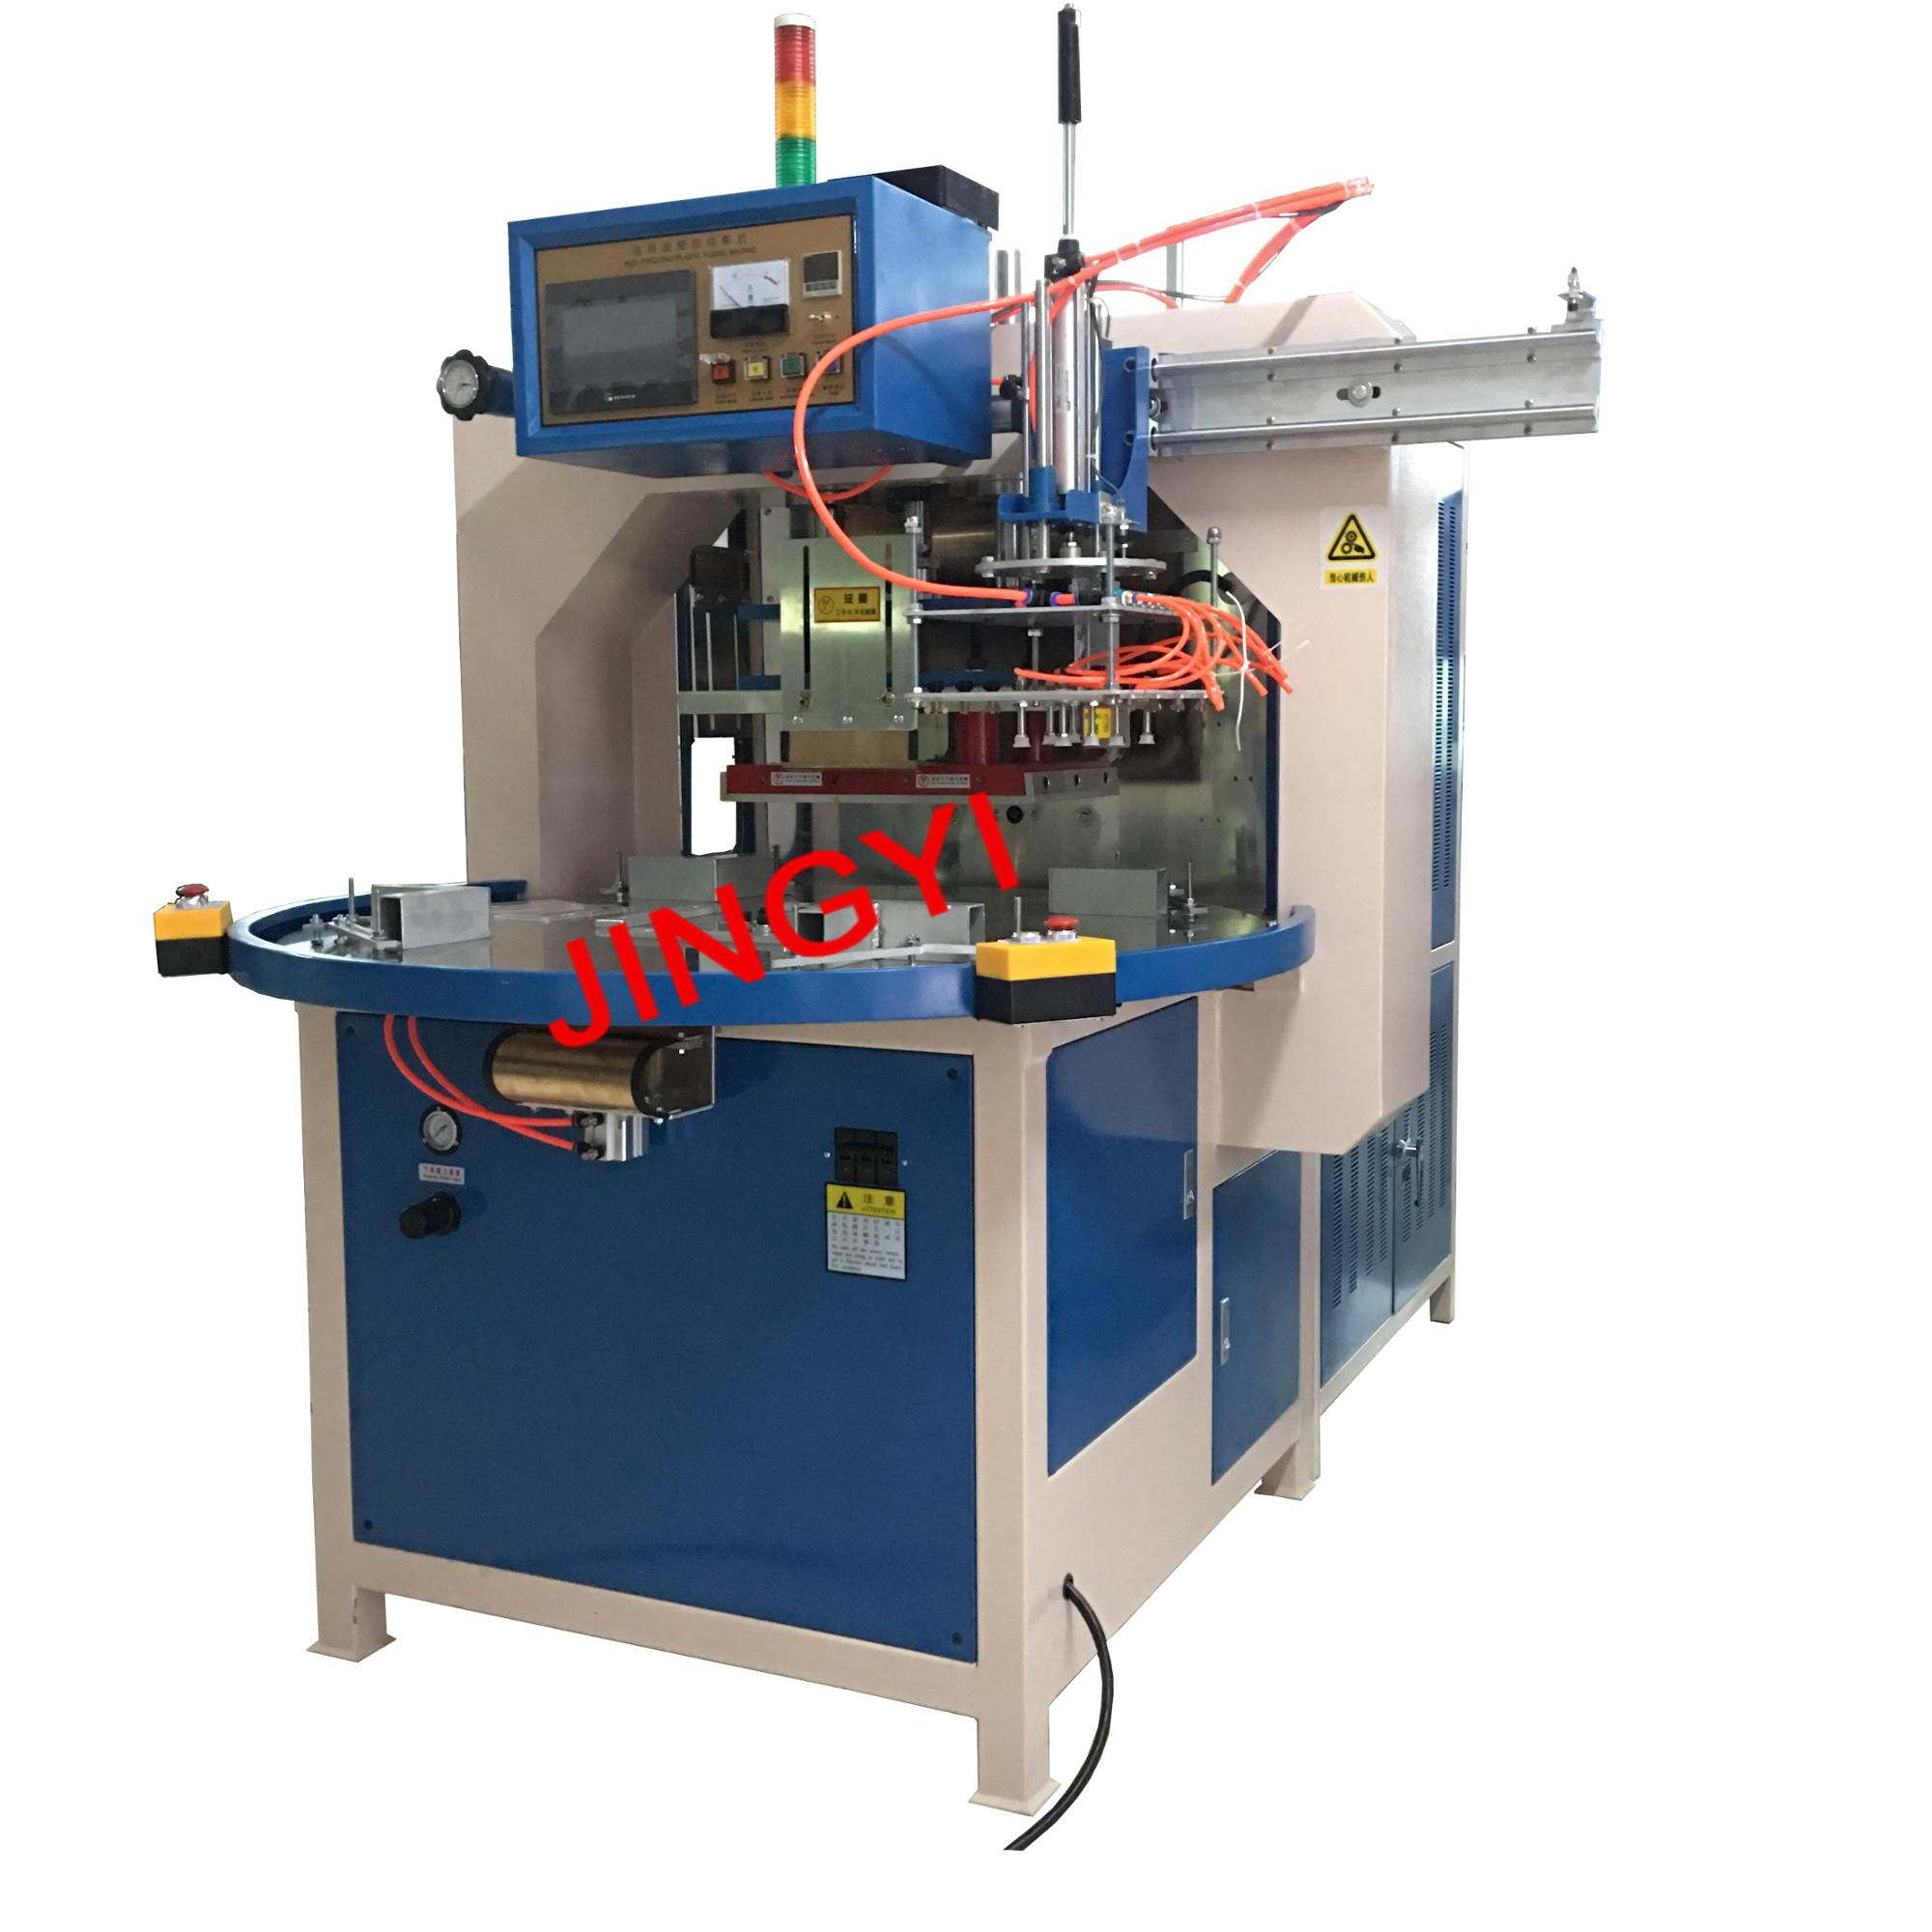 Automatic Turntable HF Welding and Cutting Machine(JY-8000AZD-R)High Frequency PVC Sealing Machine